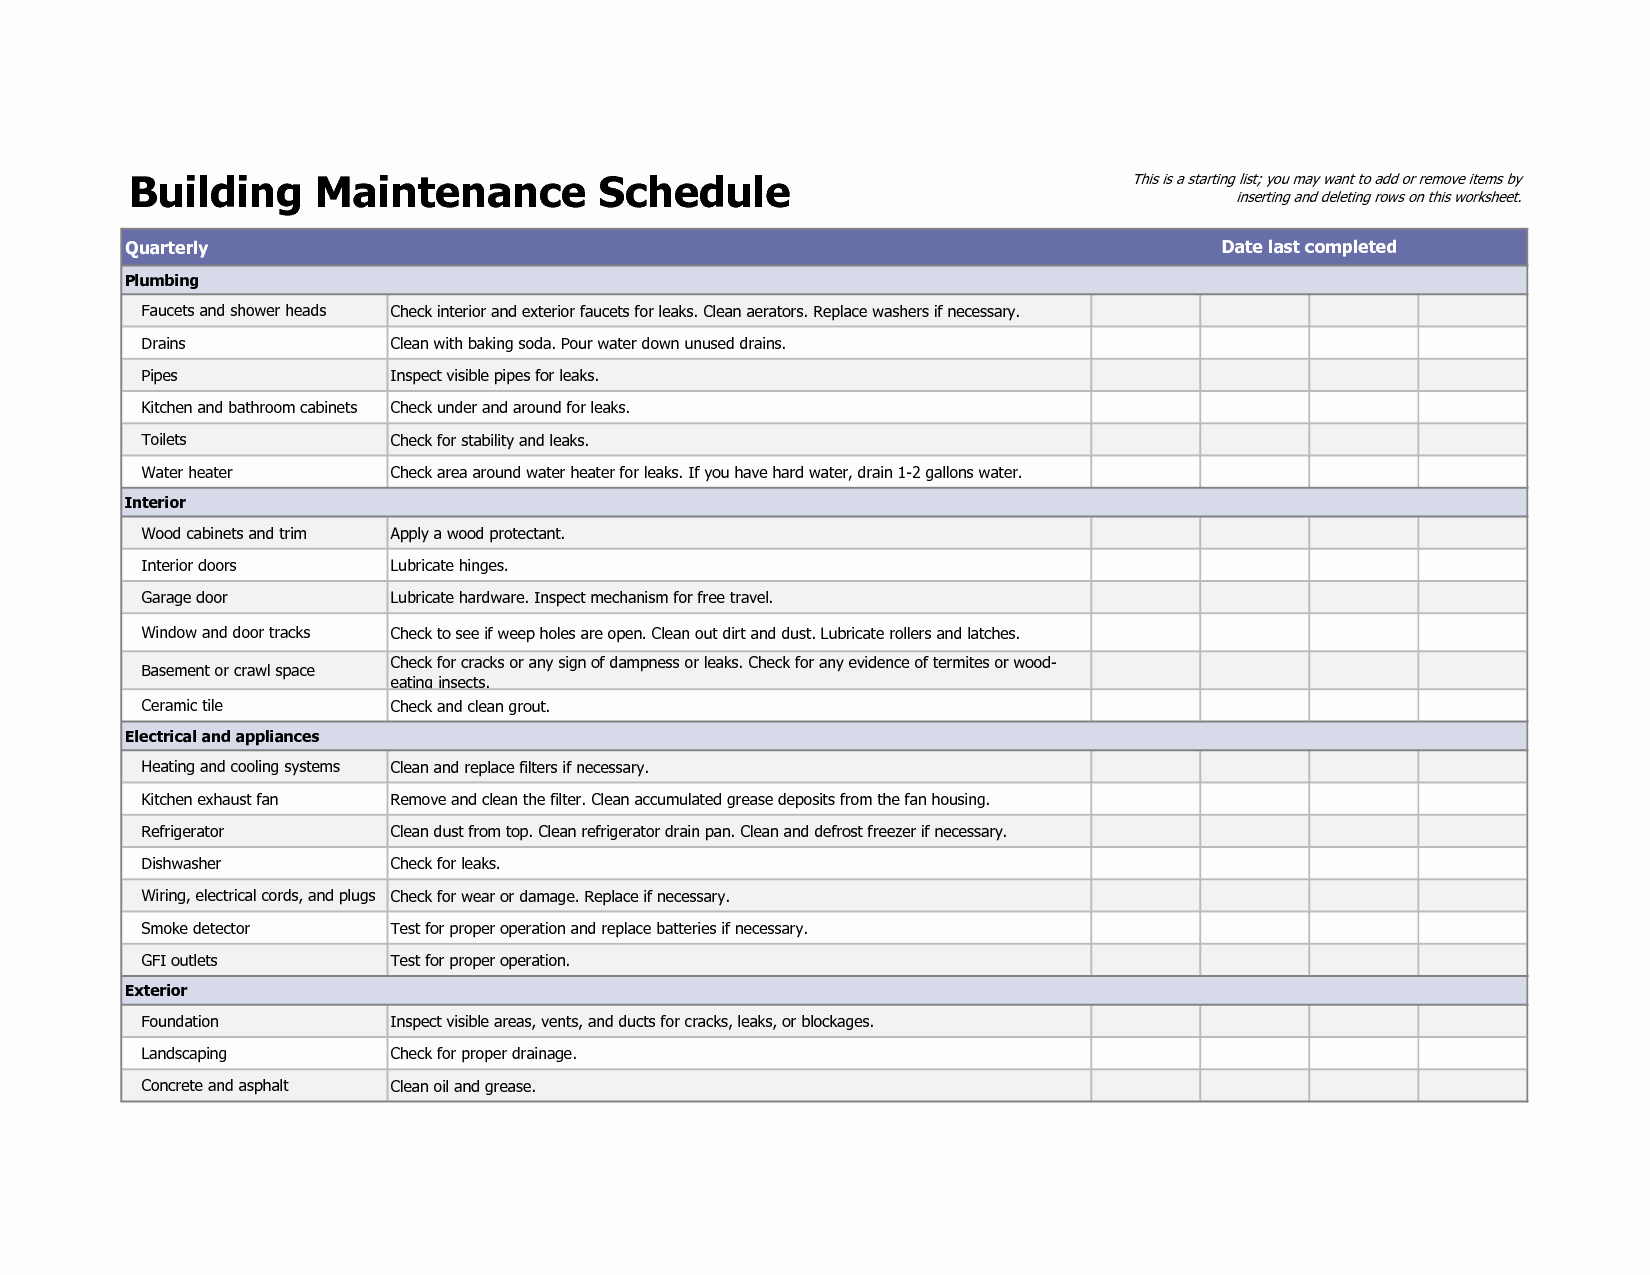 Building Maintenance Schedule Template New Building Maintenance Schedule Excel Template